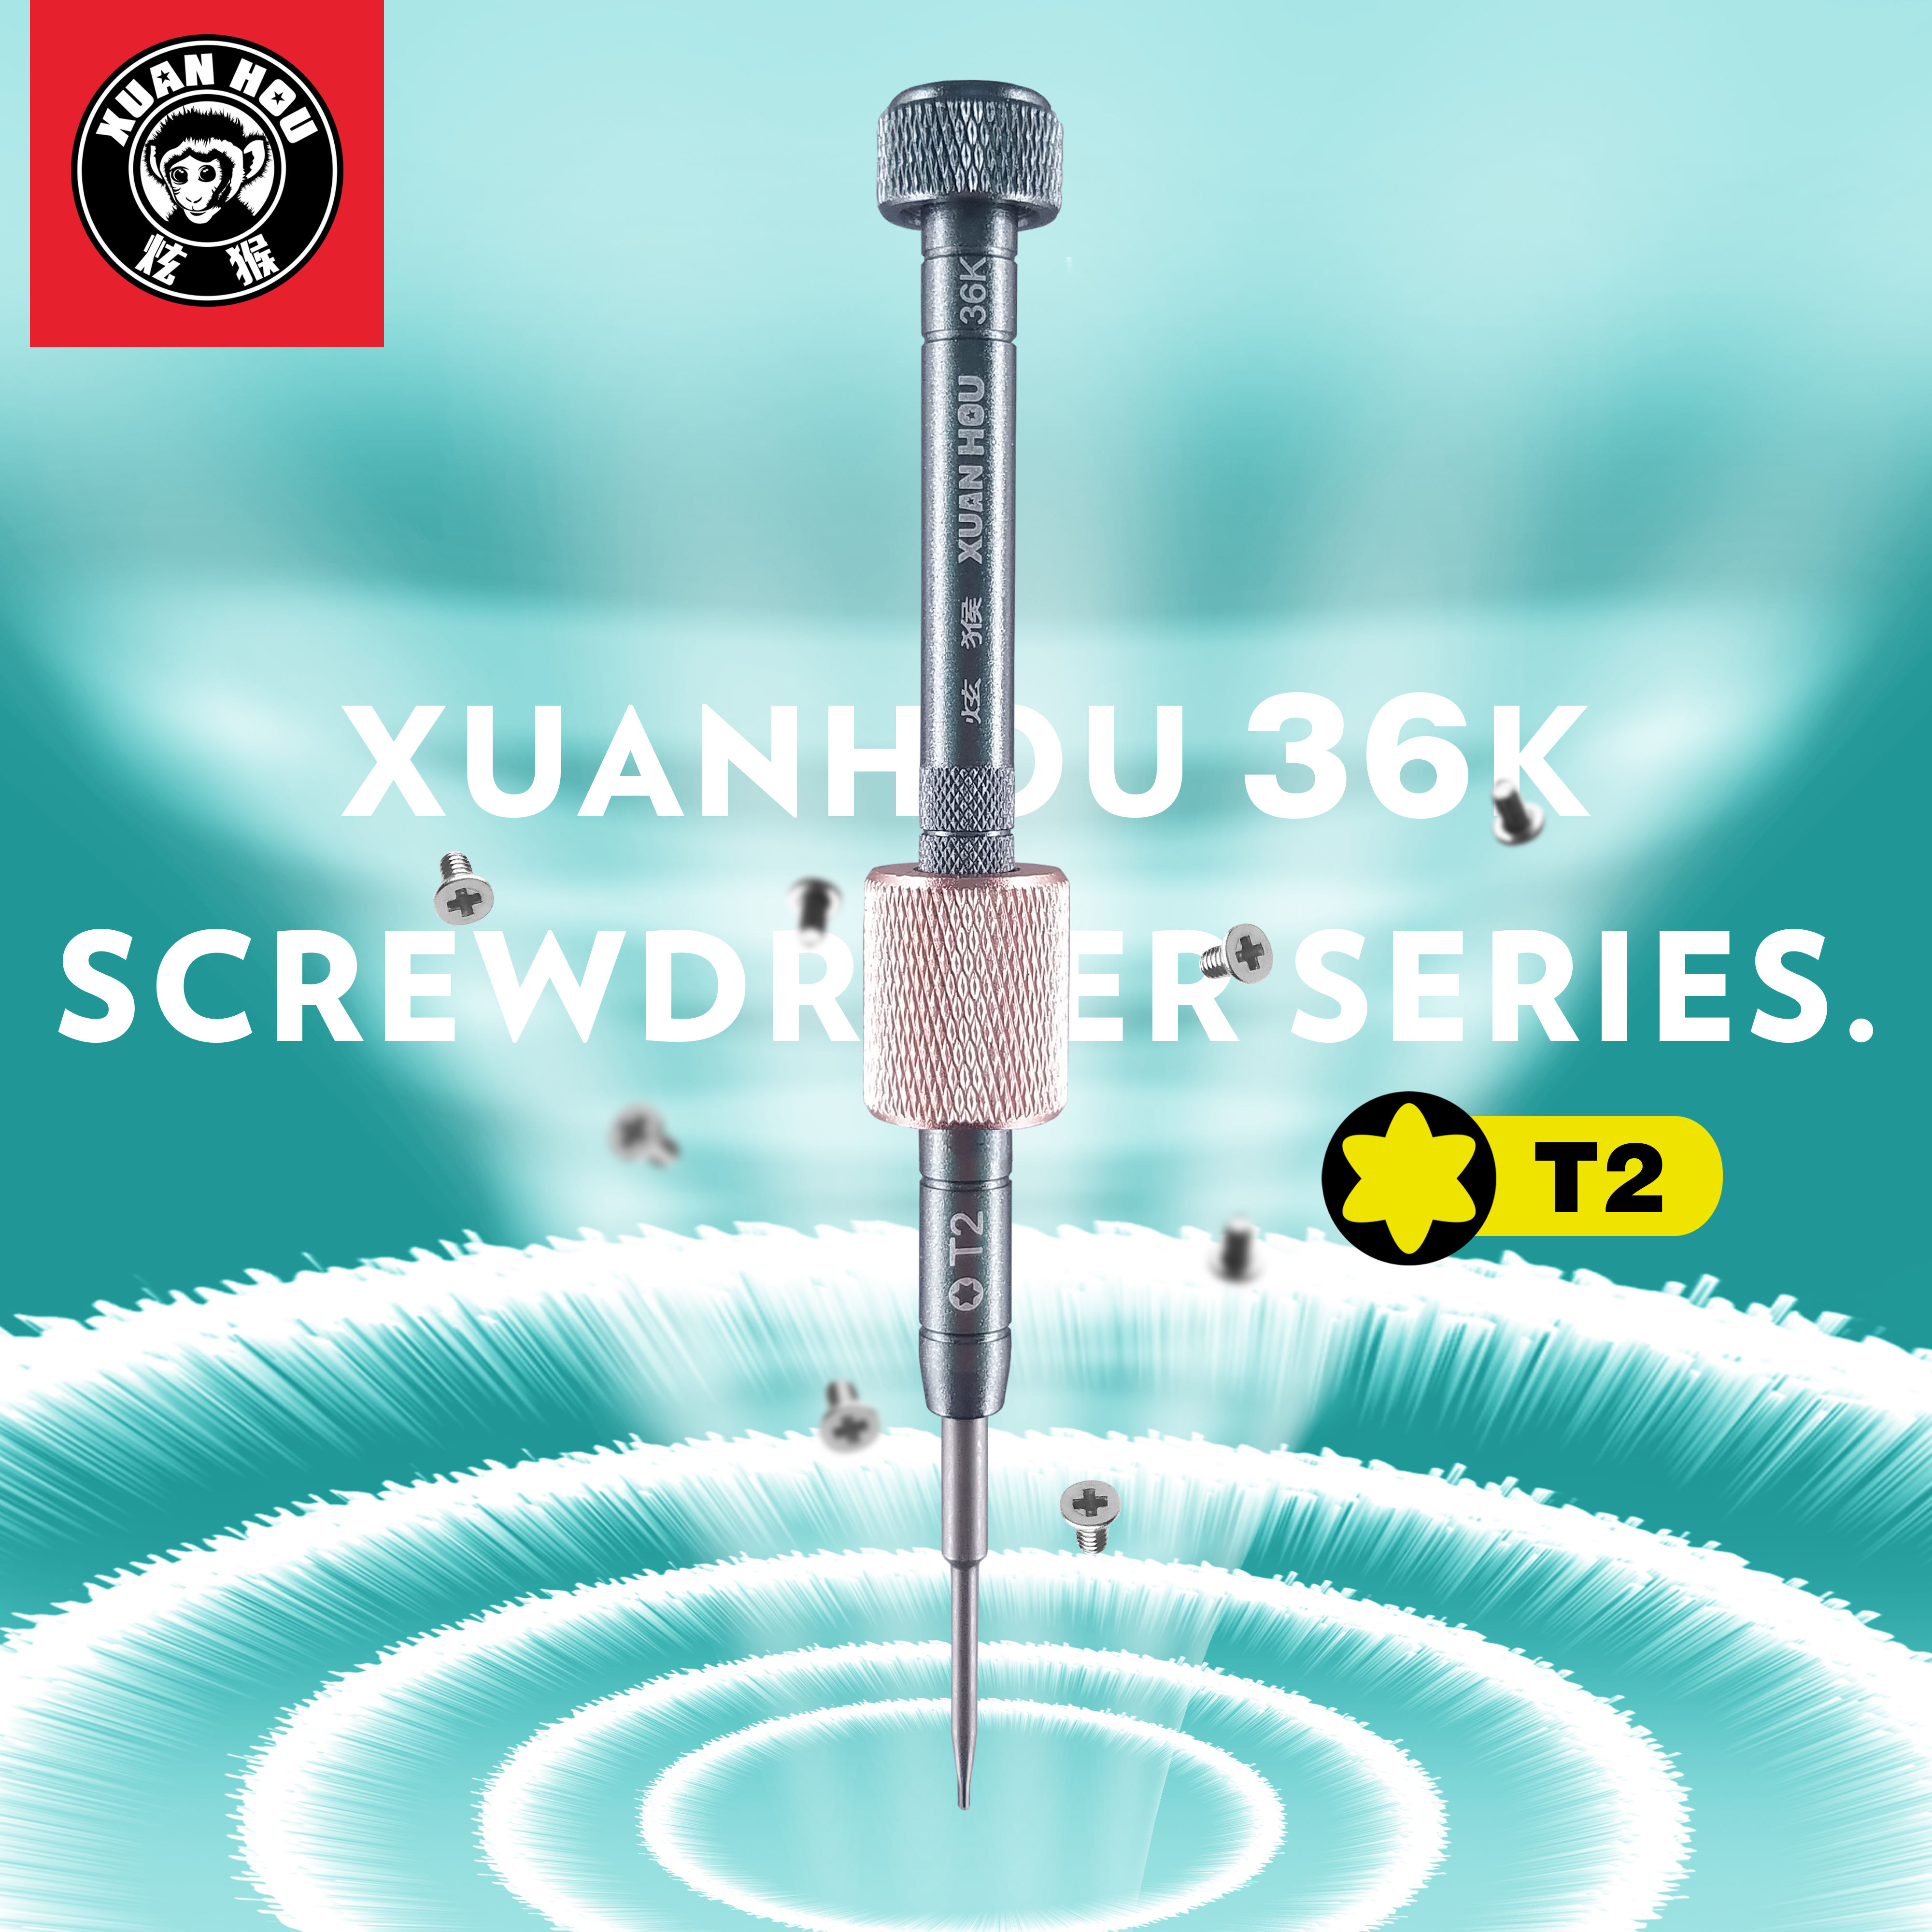 ZWX XUANHOU 36K screwdriver cross 1.3 cross 1.5 Five angle 0.8 Triangle 0.7 Six angle T2 metal screwdriver Repair Tools